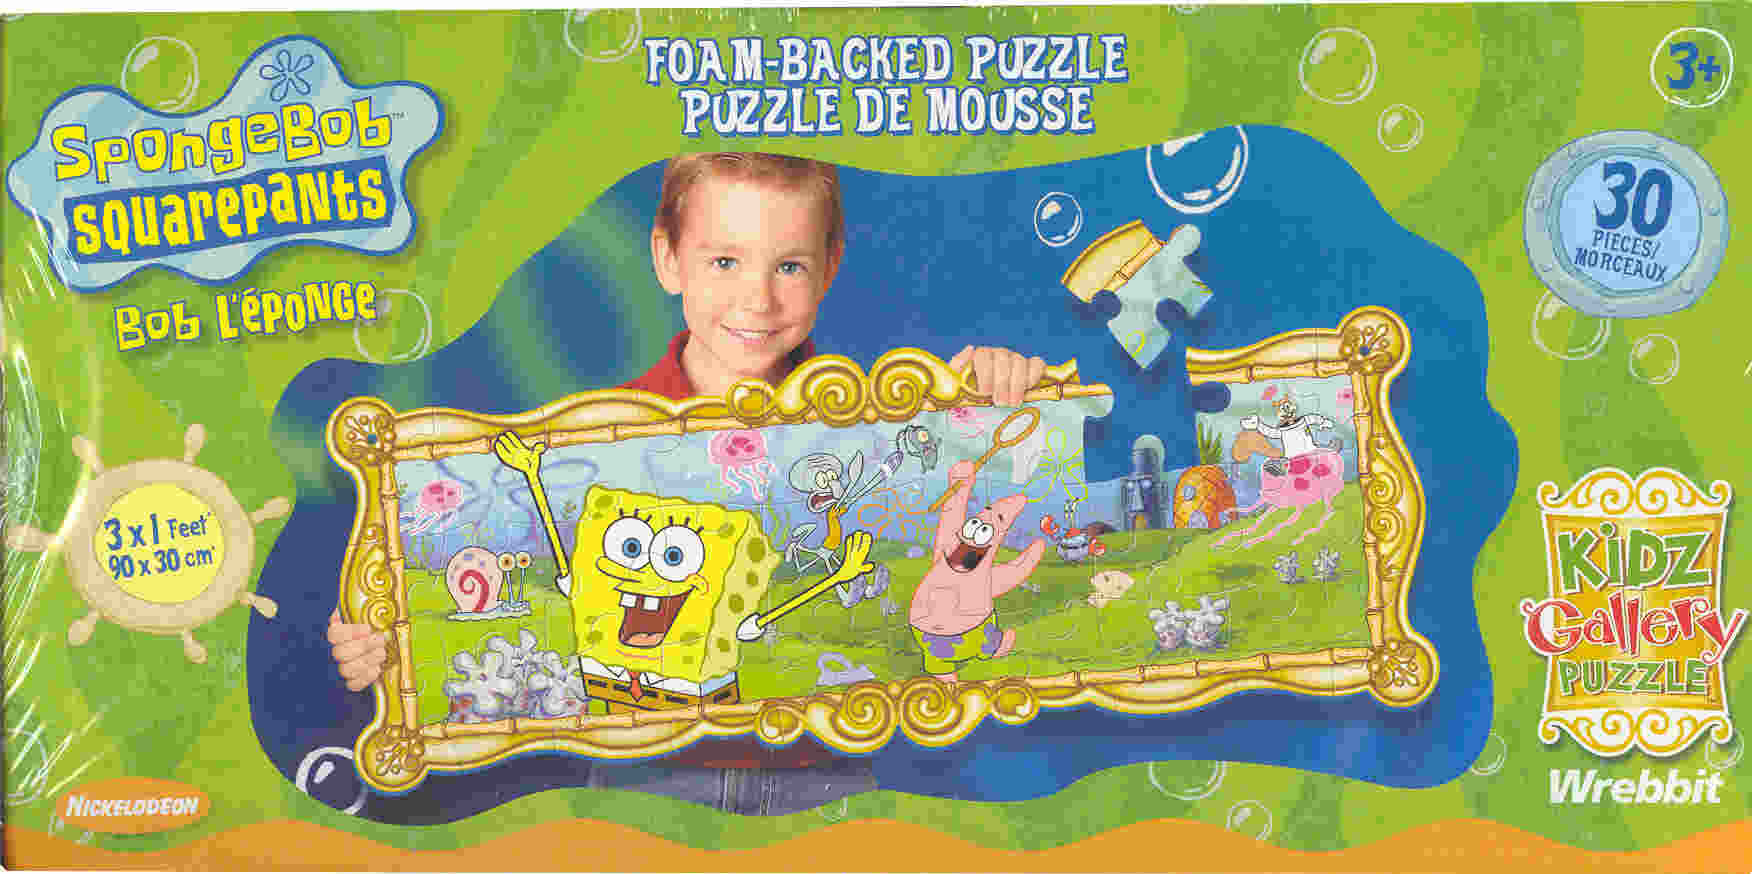 SpongeBob SquarePants and Friends Foam-Backed Puzzle - Additional View